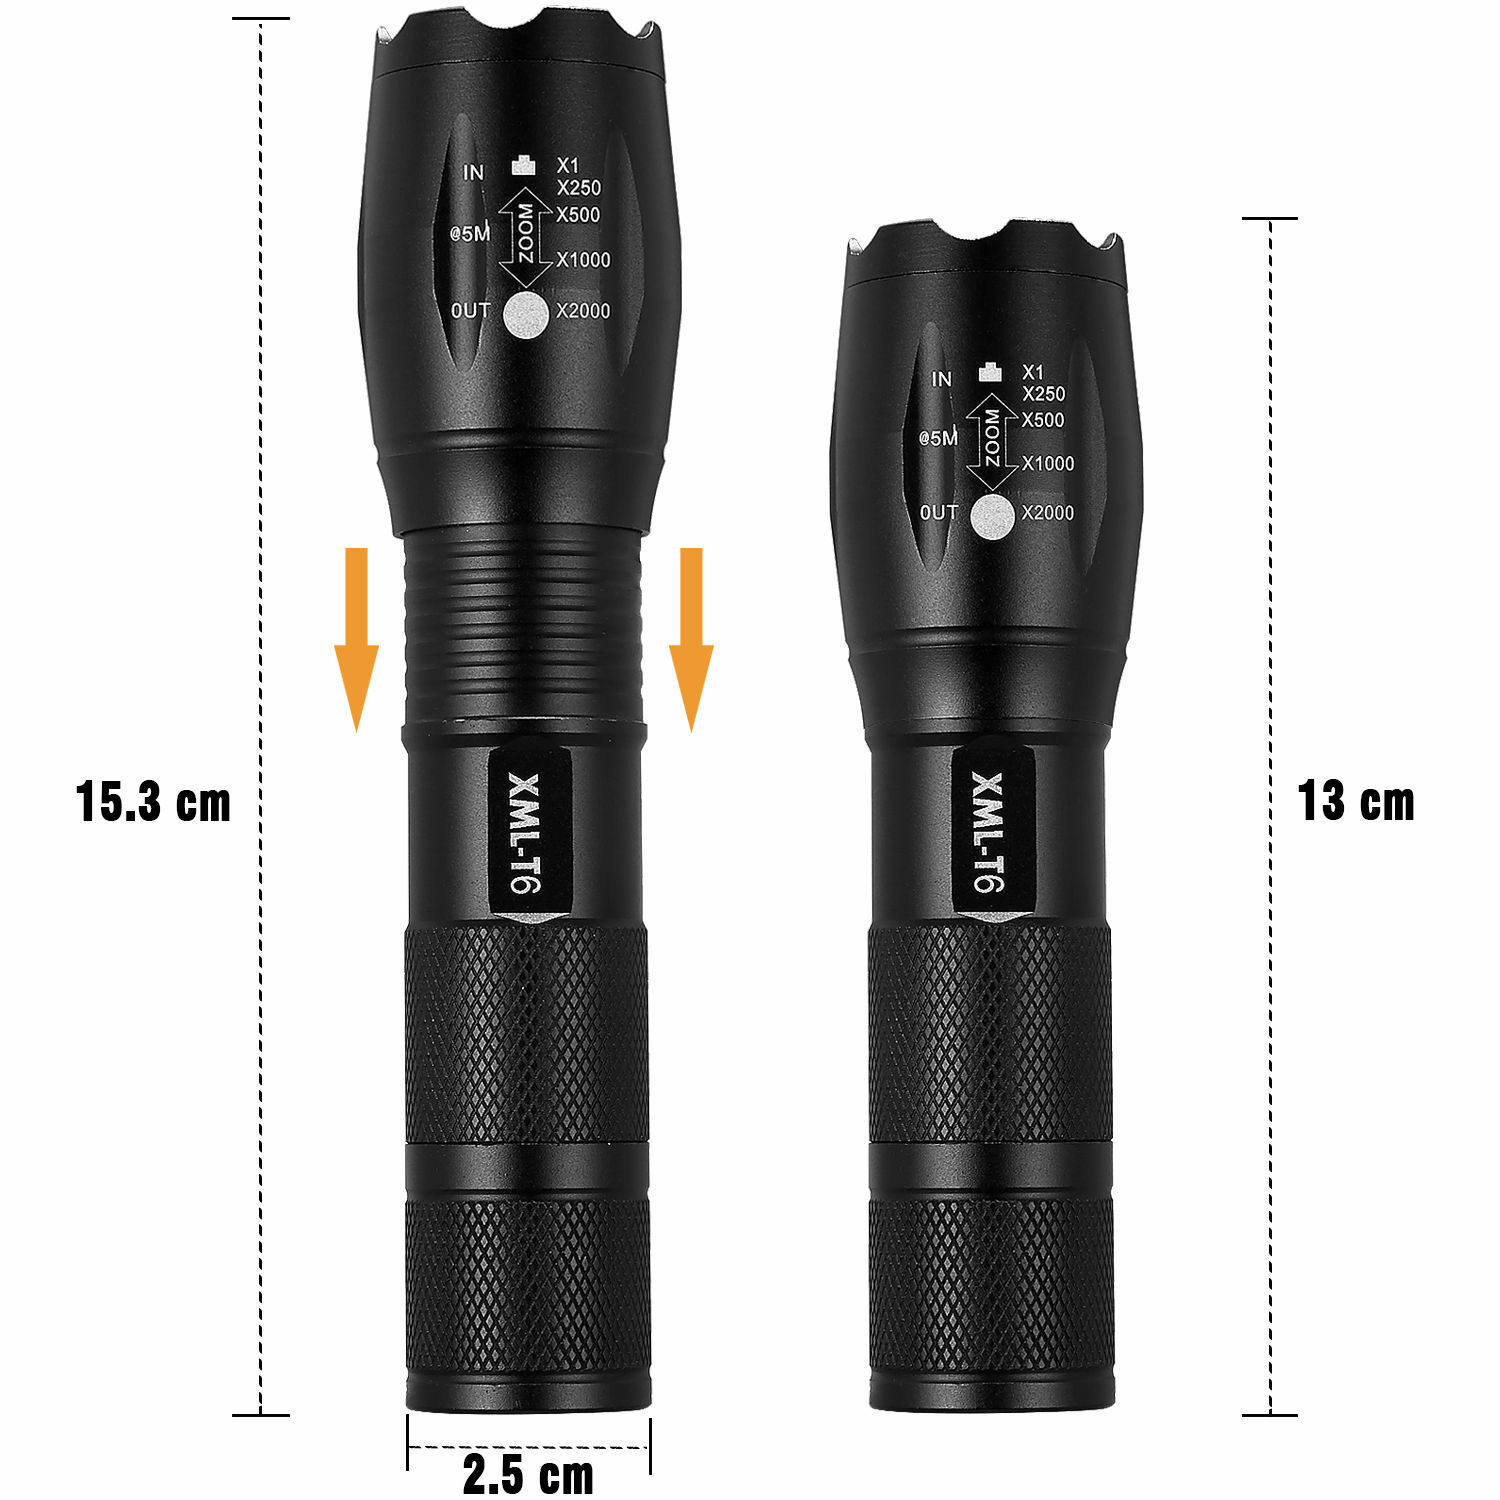 2 Sets 15000 Lumens 5 Modes CREE XML T6 LED Flashlight 18650 Battery+Charger USA Camping & Hiking